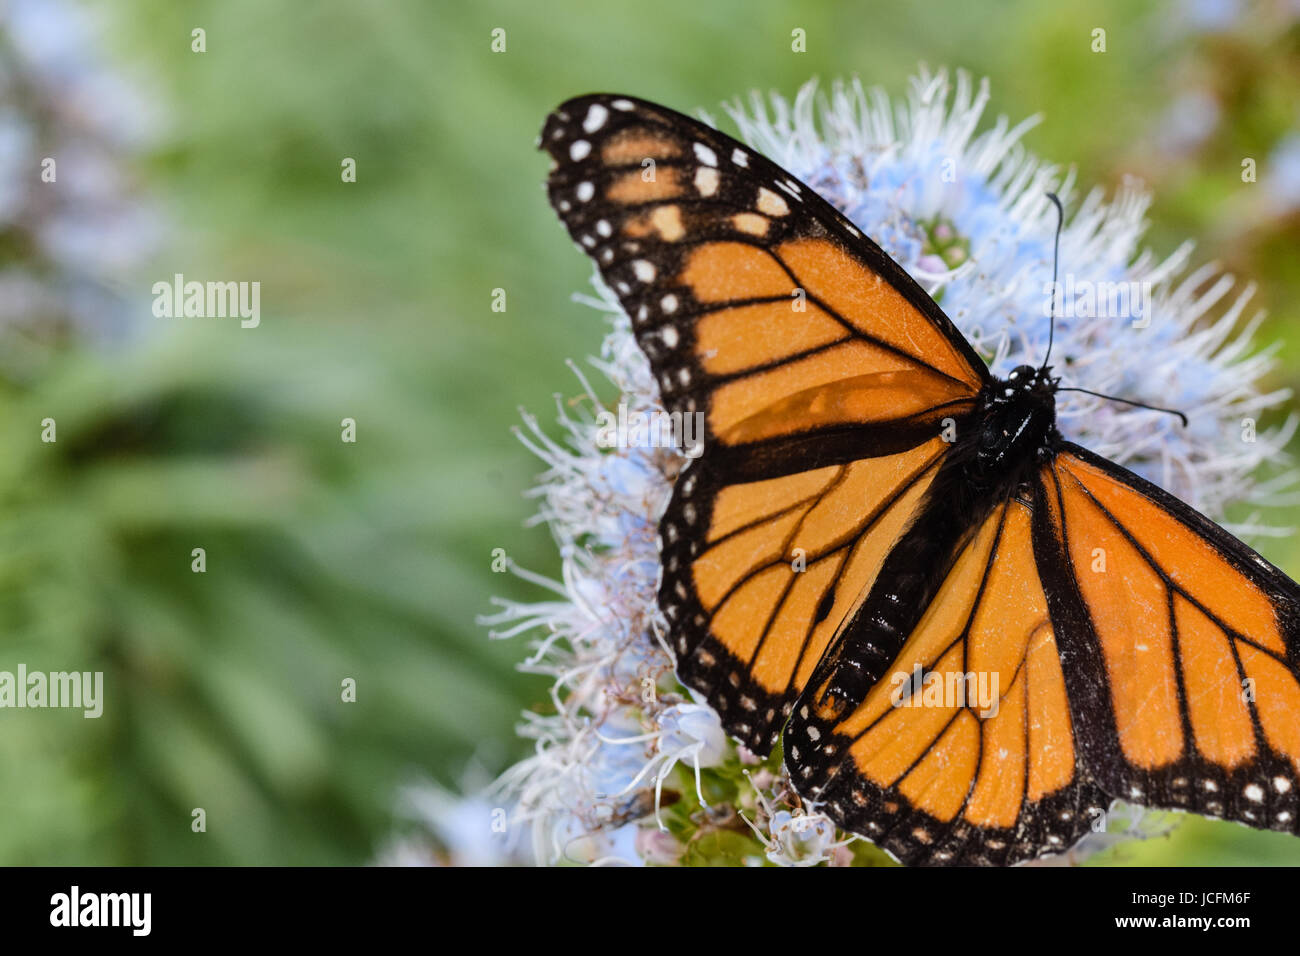 Large monarch butterfly collecting nectar pollen from purple echium flower - Porto Santo, Madeira, Portugal - Stock Image